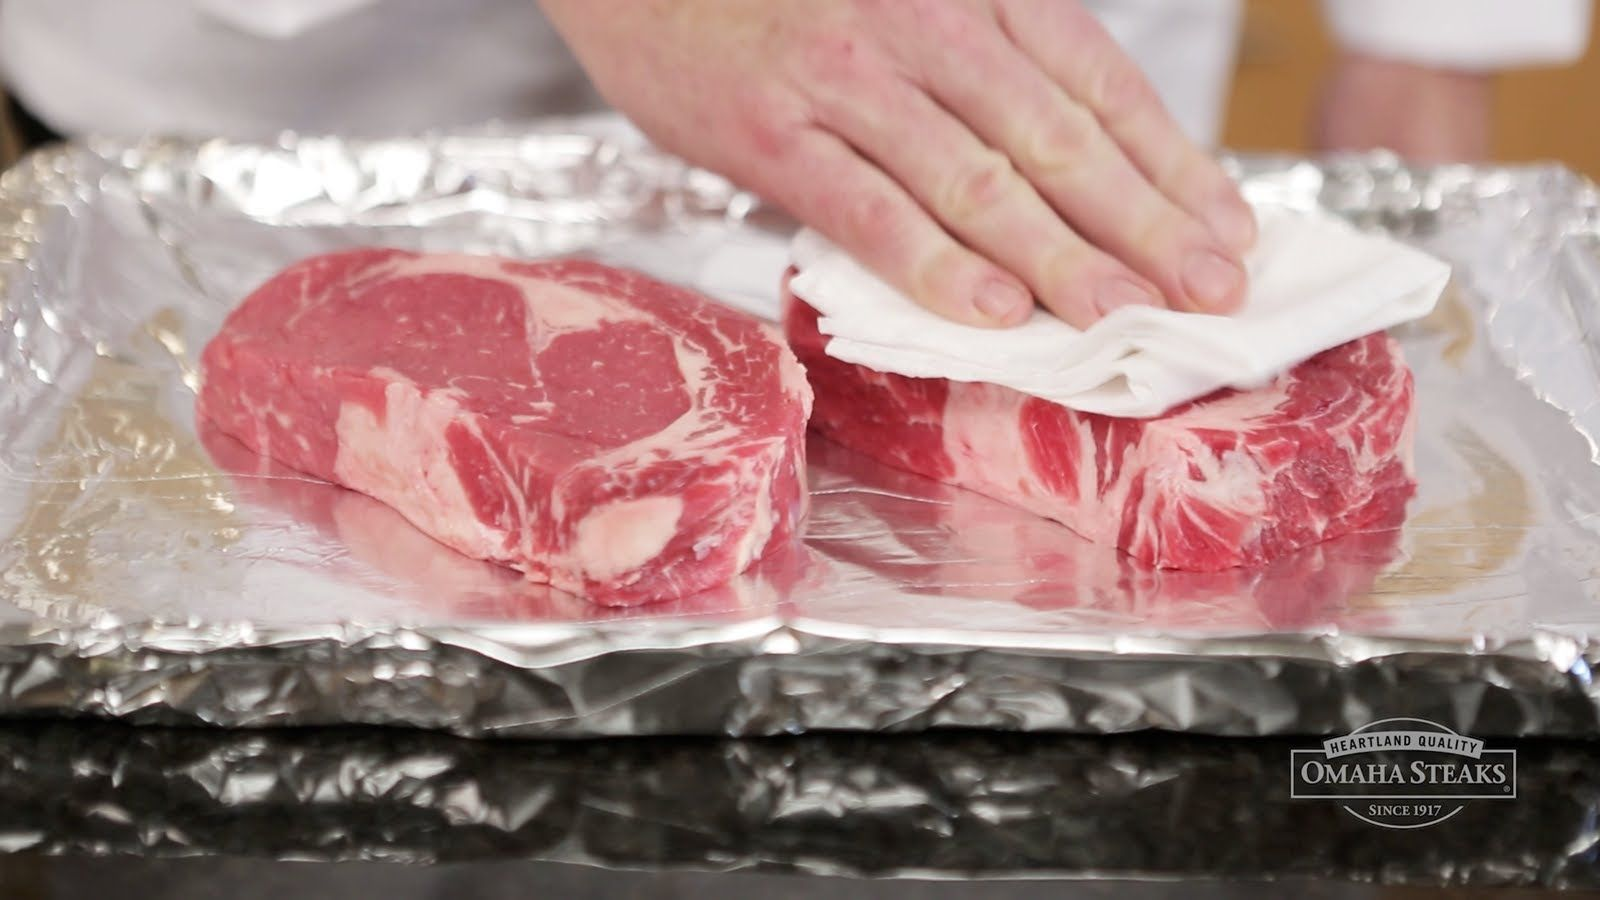 Omaha Steaks Executive Chef Karl Marsh Shows You How To Utilize Your